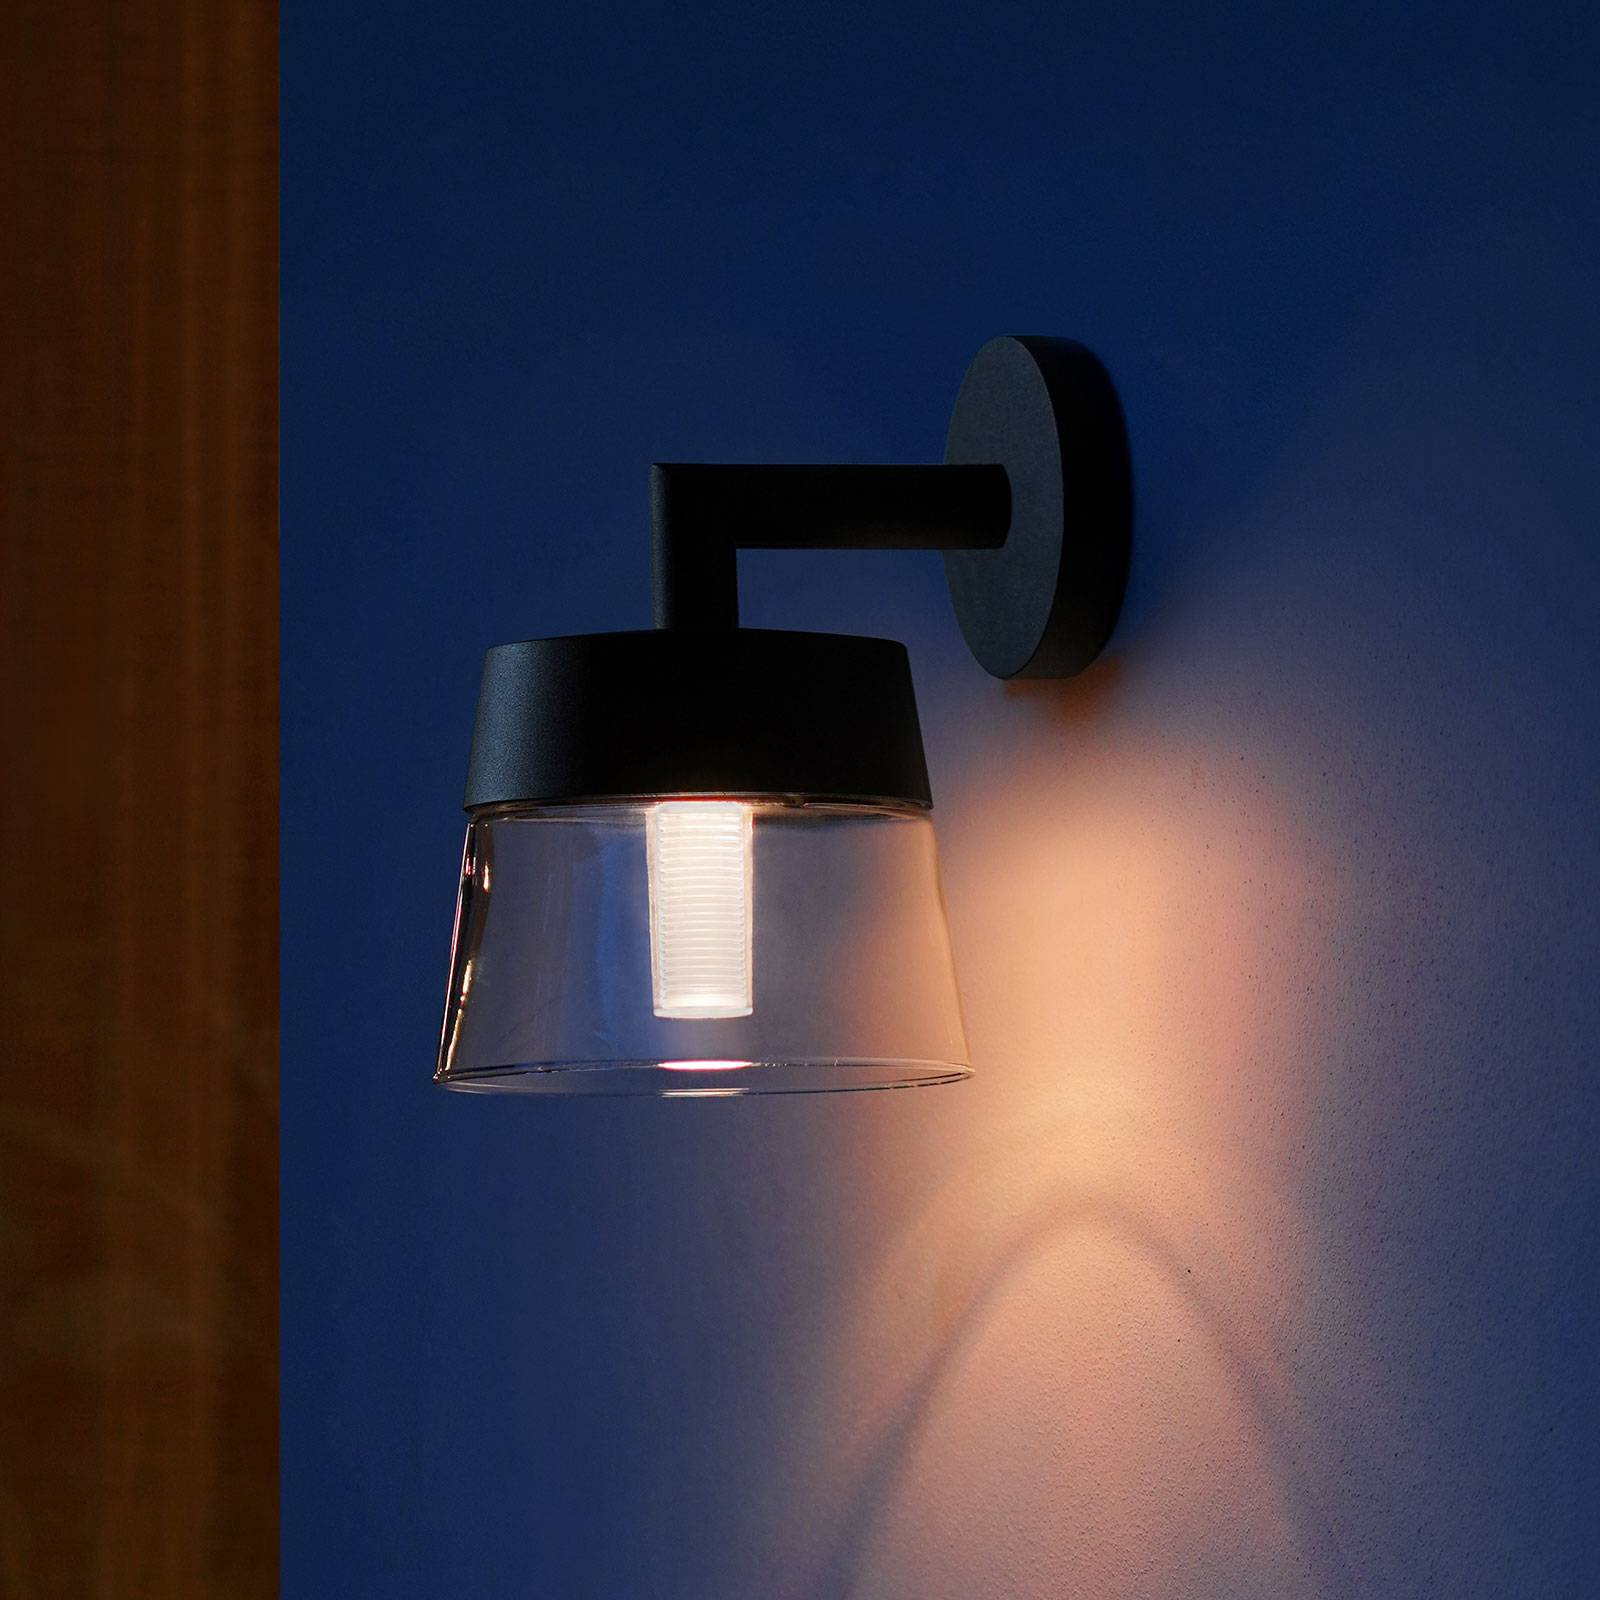 Philips Hue White + Color Attract LED-vegglampe